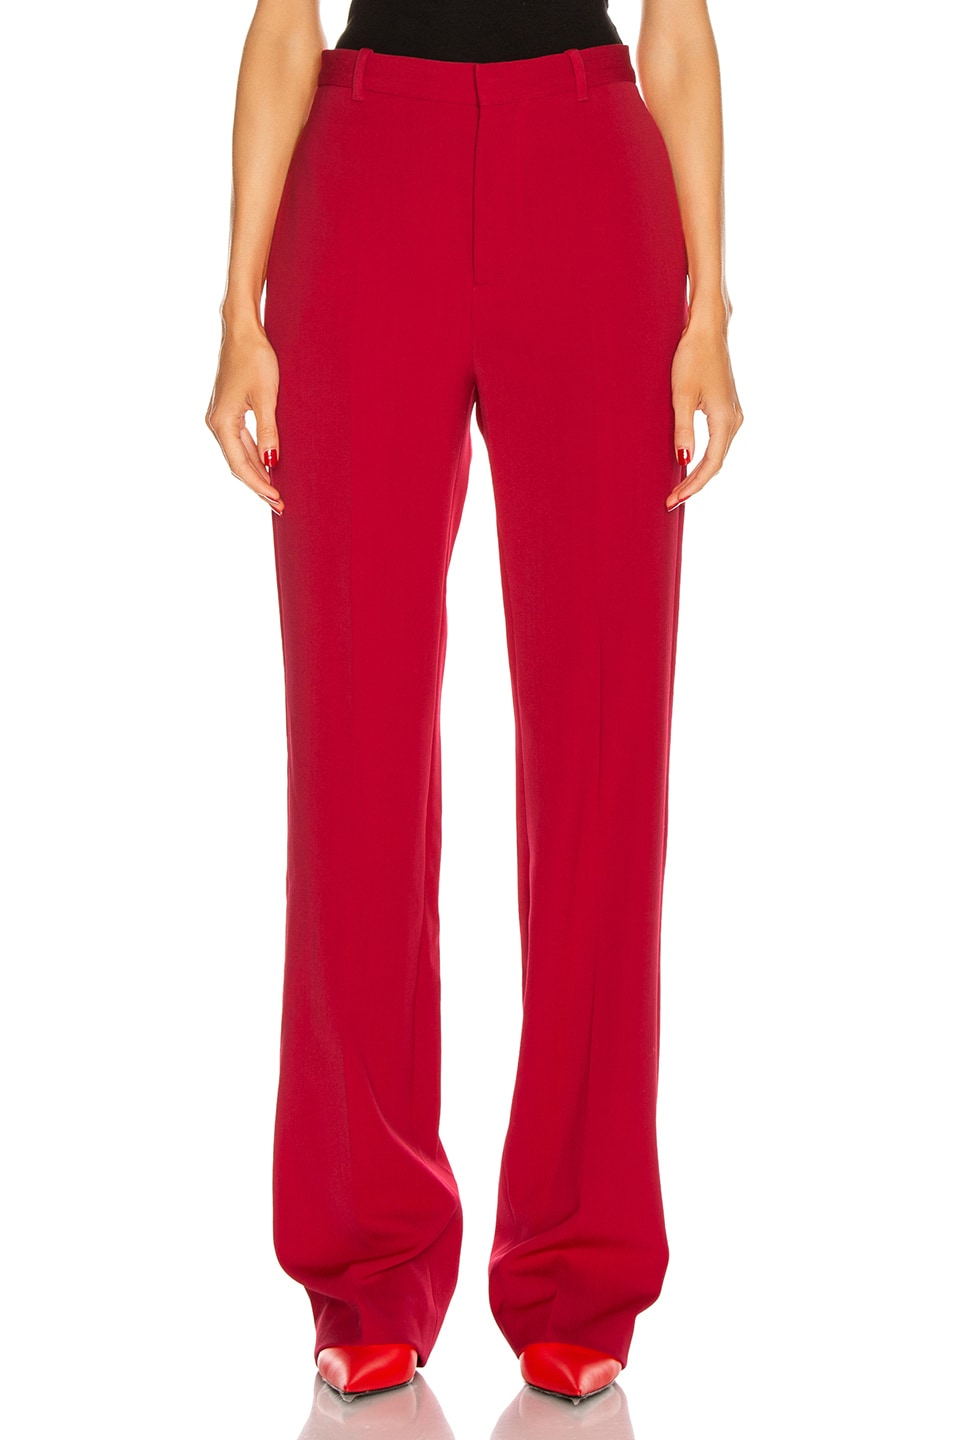 Image 1 of Balenciaga Tailored Pant in Masai Red